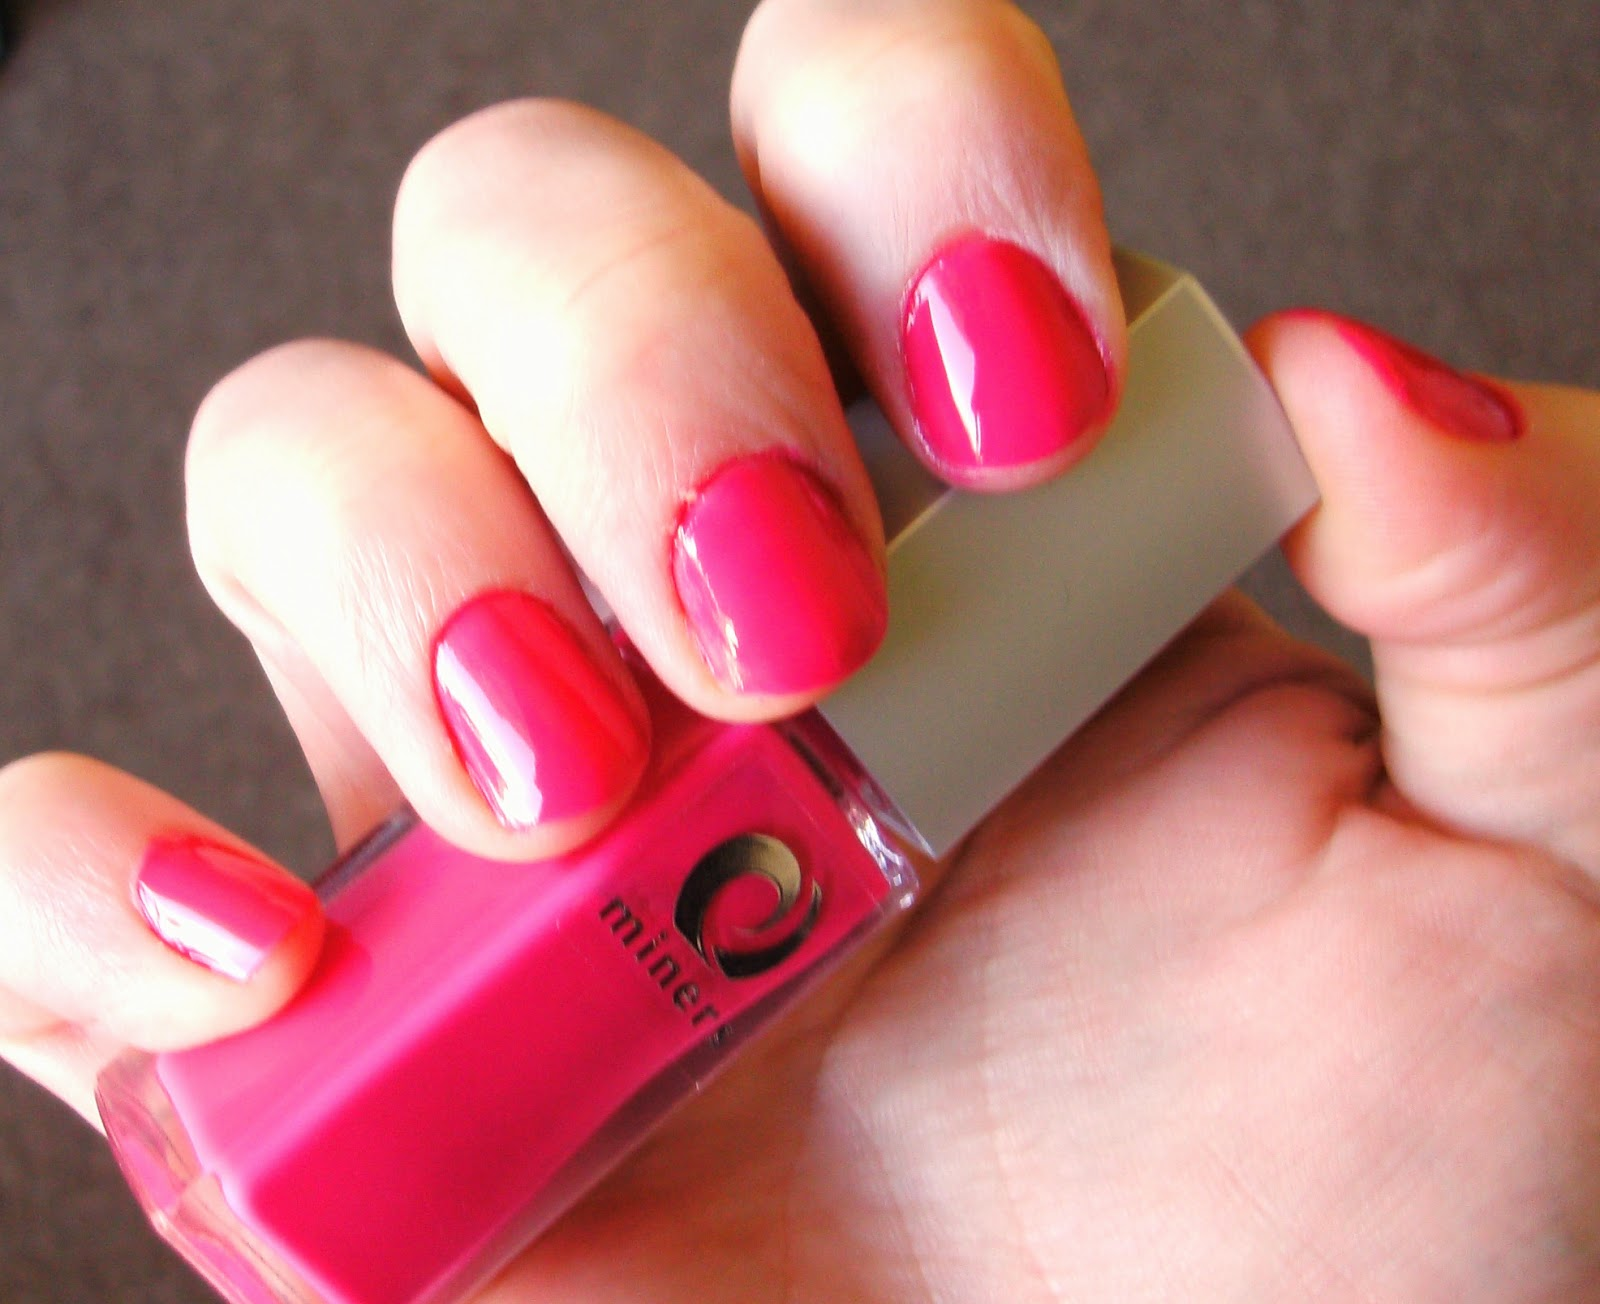 Miners Cosmetics SS14 Trends Hot Pink Neon Nail Polish in Jezebel